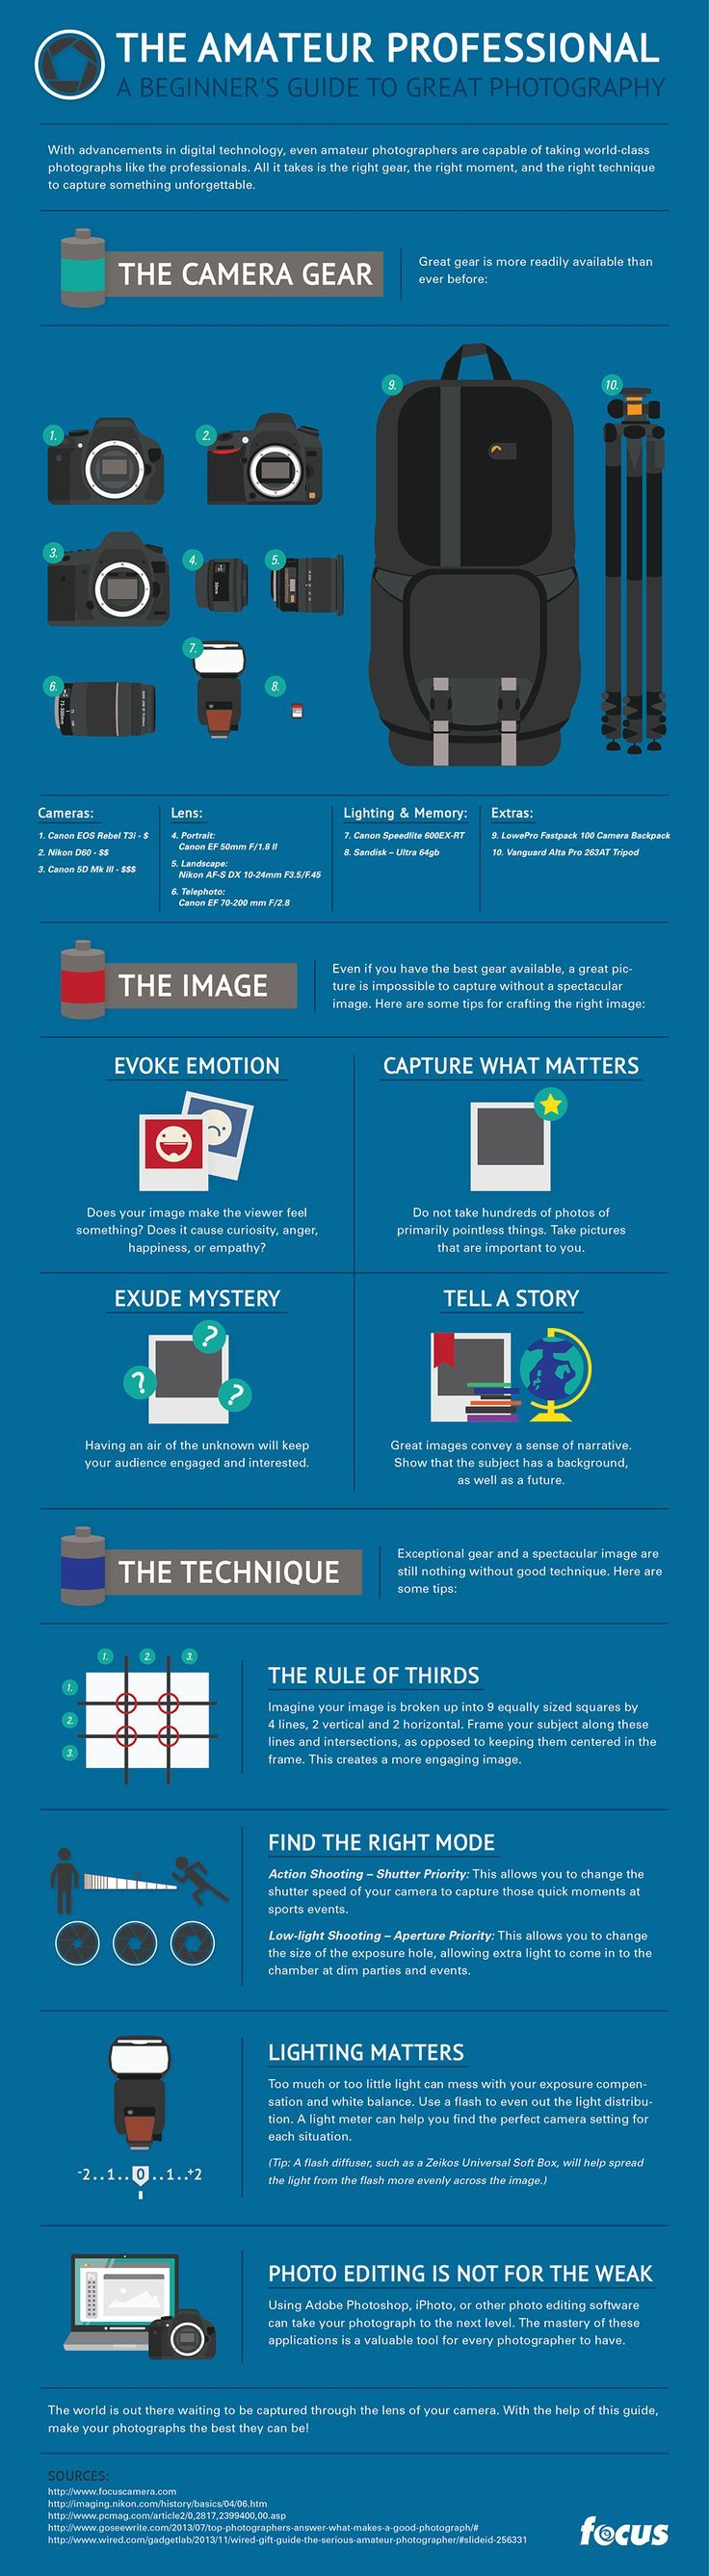 Amateur Professional: a Beginner's Guide to Great Photography - Tipsographic